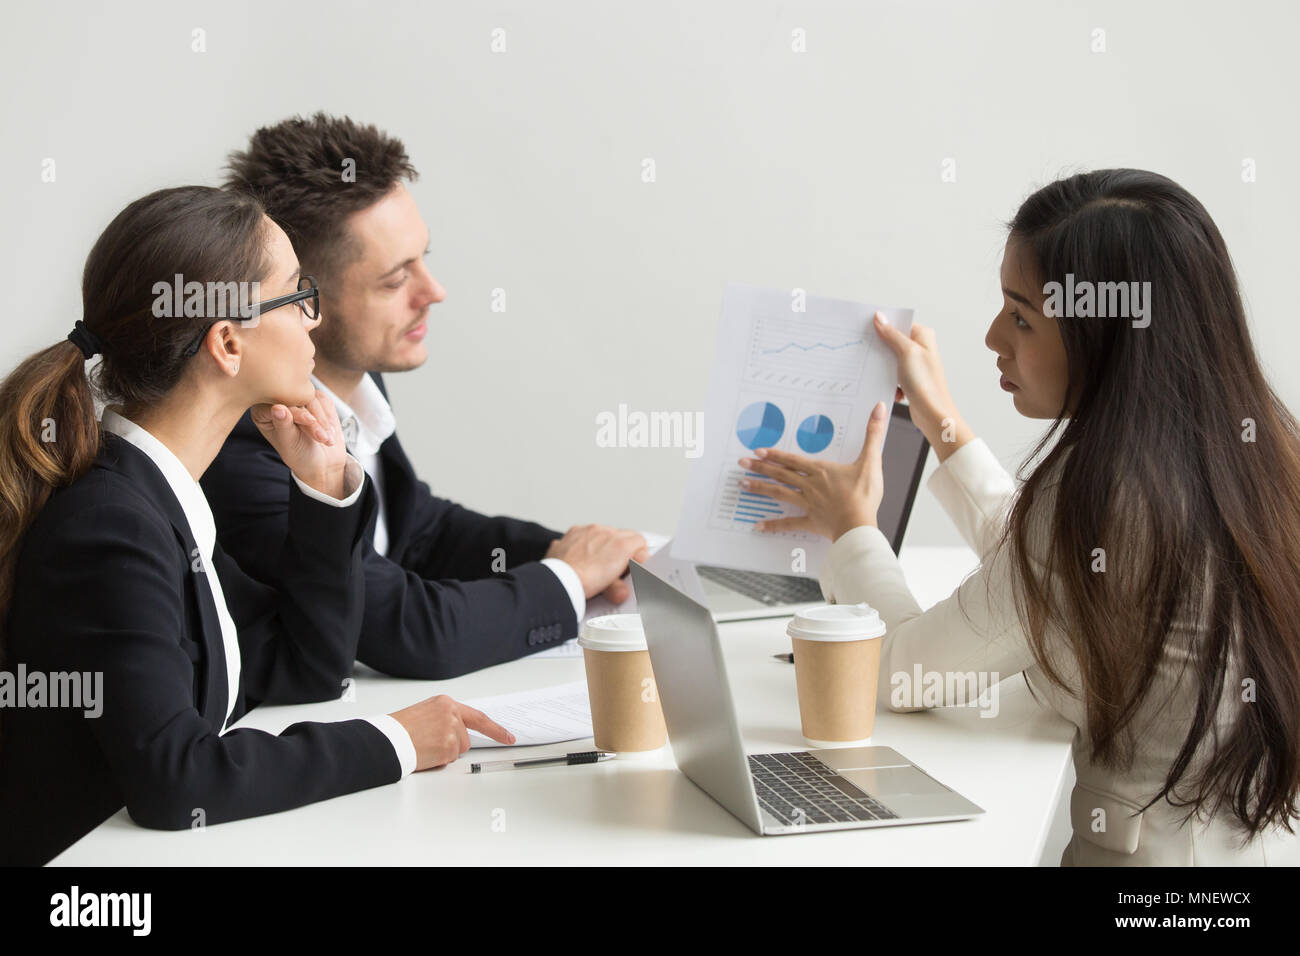 Female worker presenting visual templates to coworkers - Stock Image